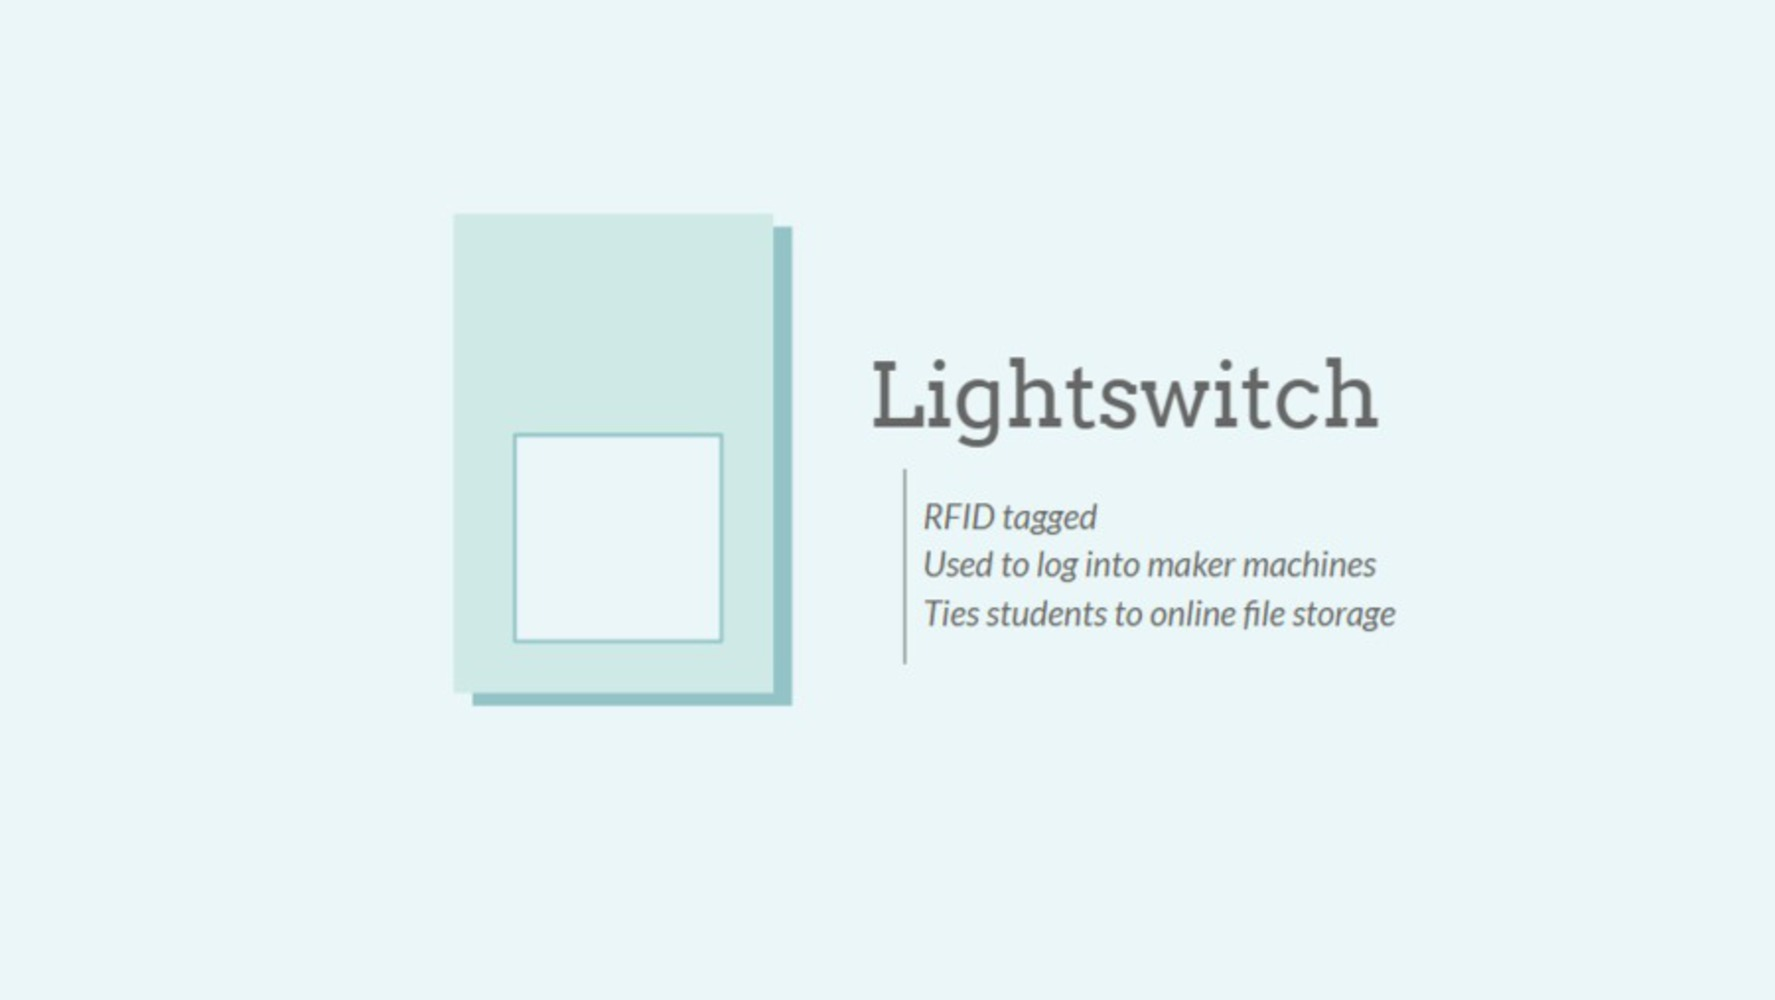 Lightswitch slide.png.thumb